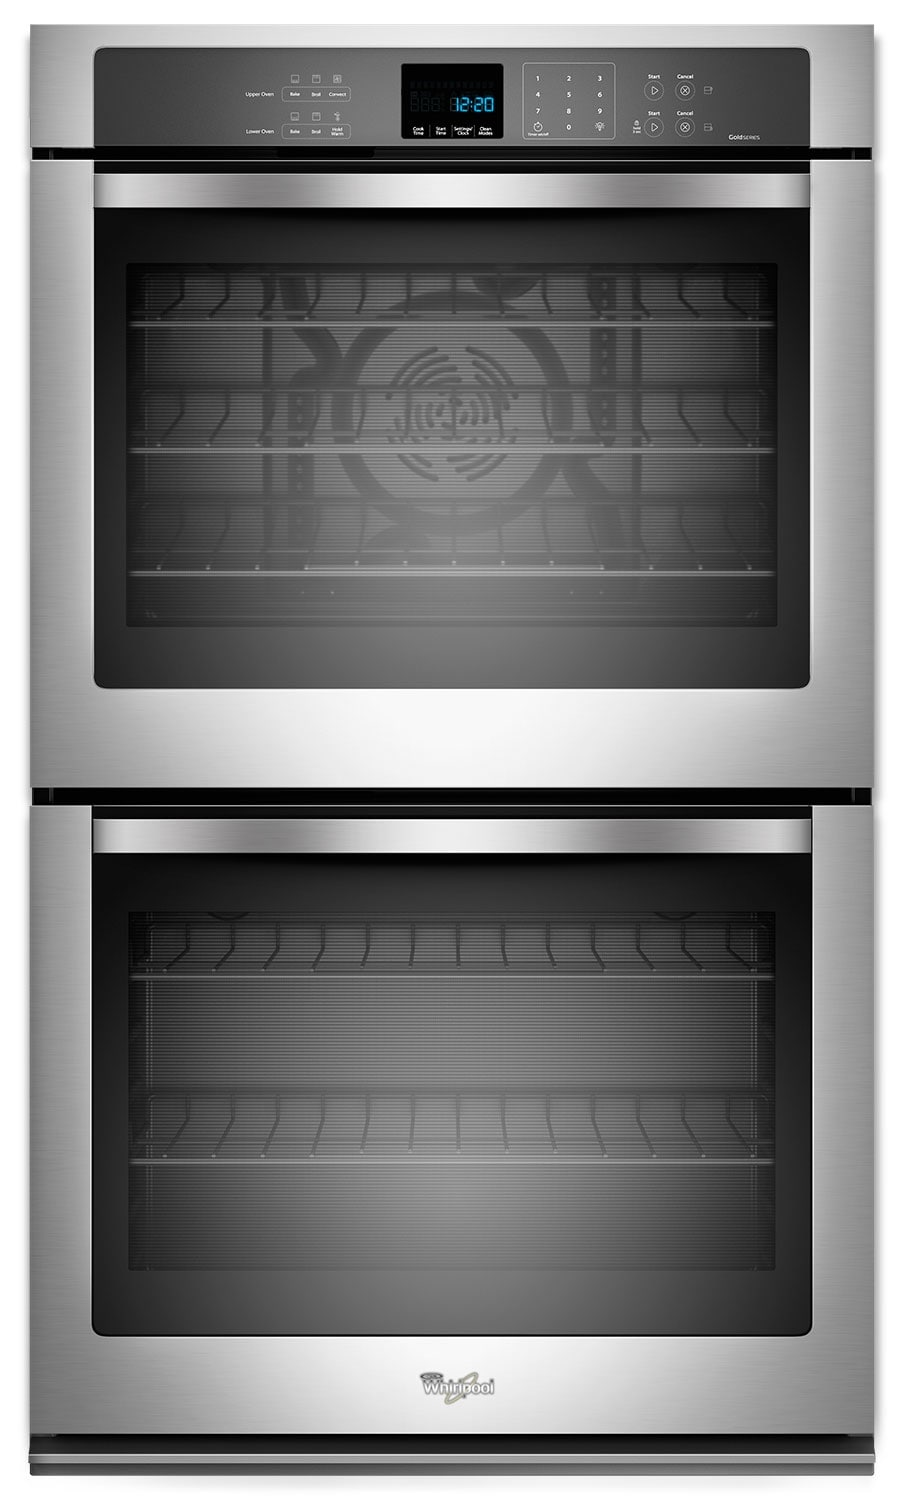 Cooking Products - Whirlpool Stainless Steel Convection Double Wall Oven (10 Cu. Ft.) - WOD93EC0AS